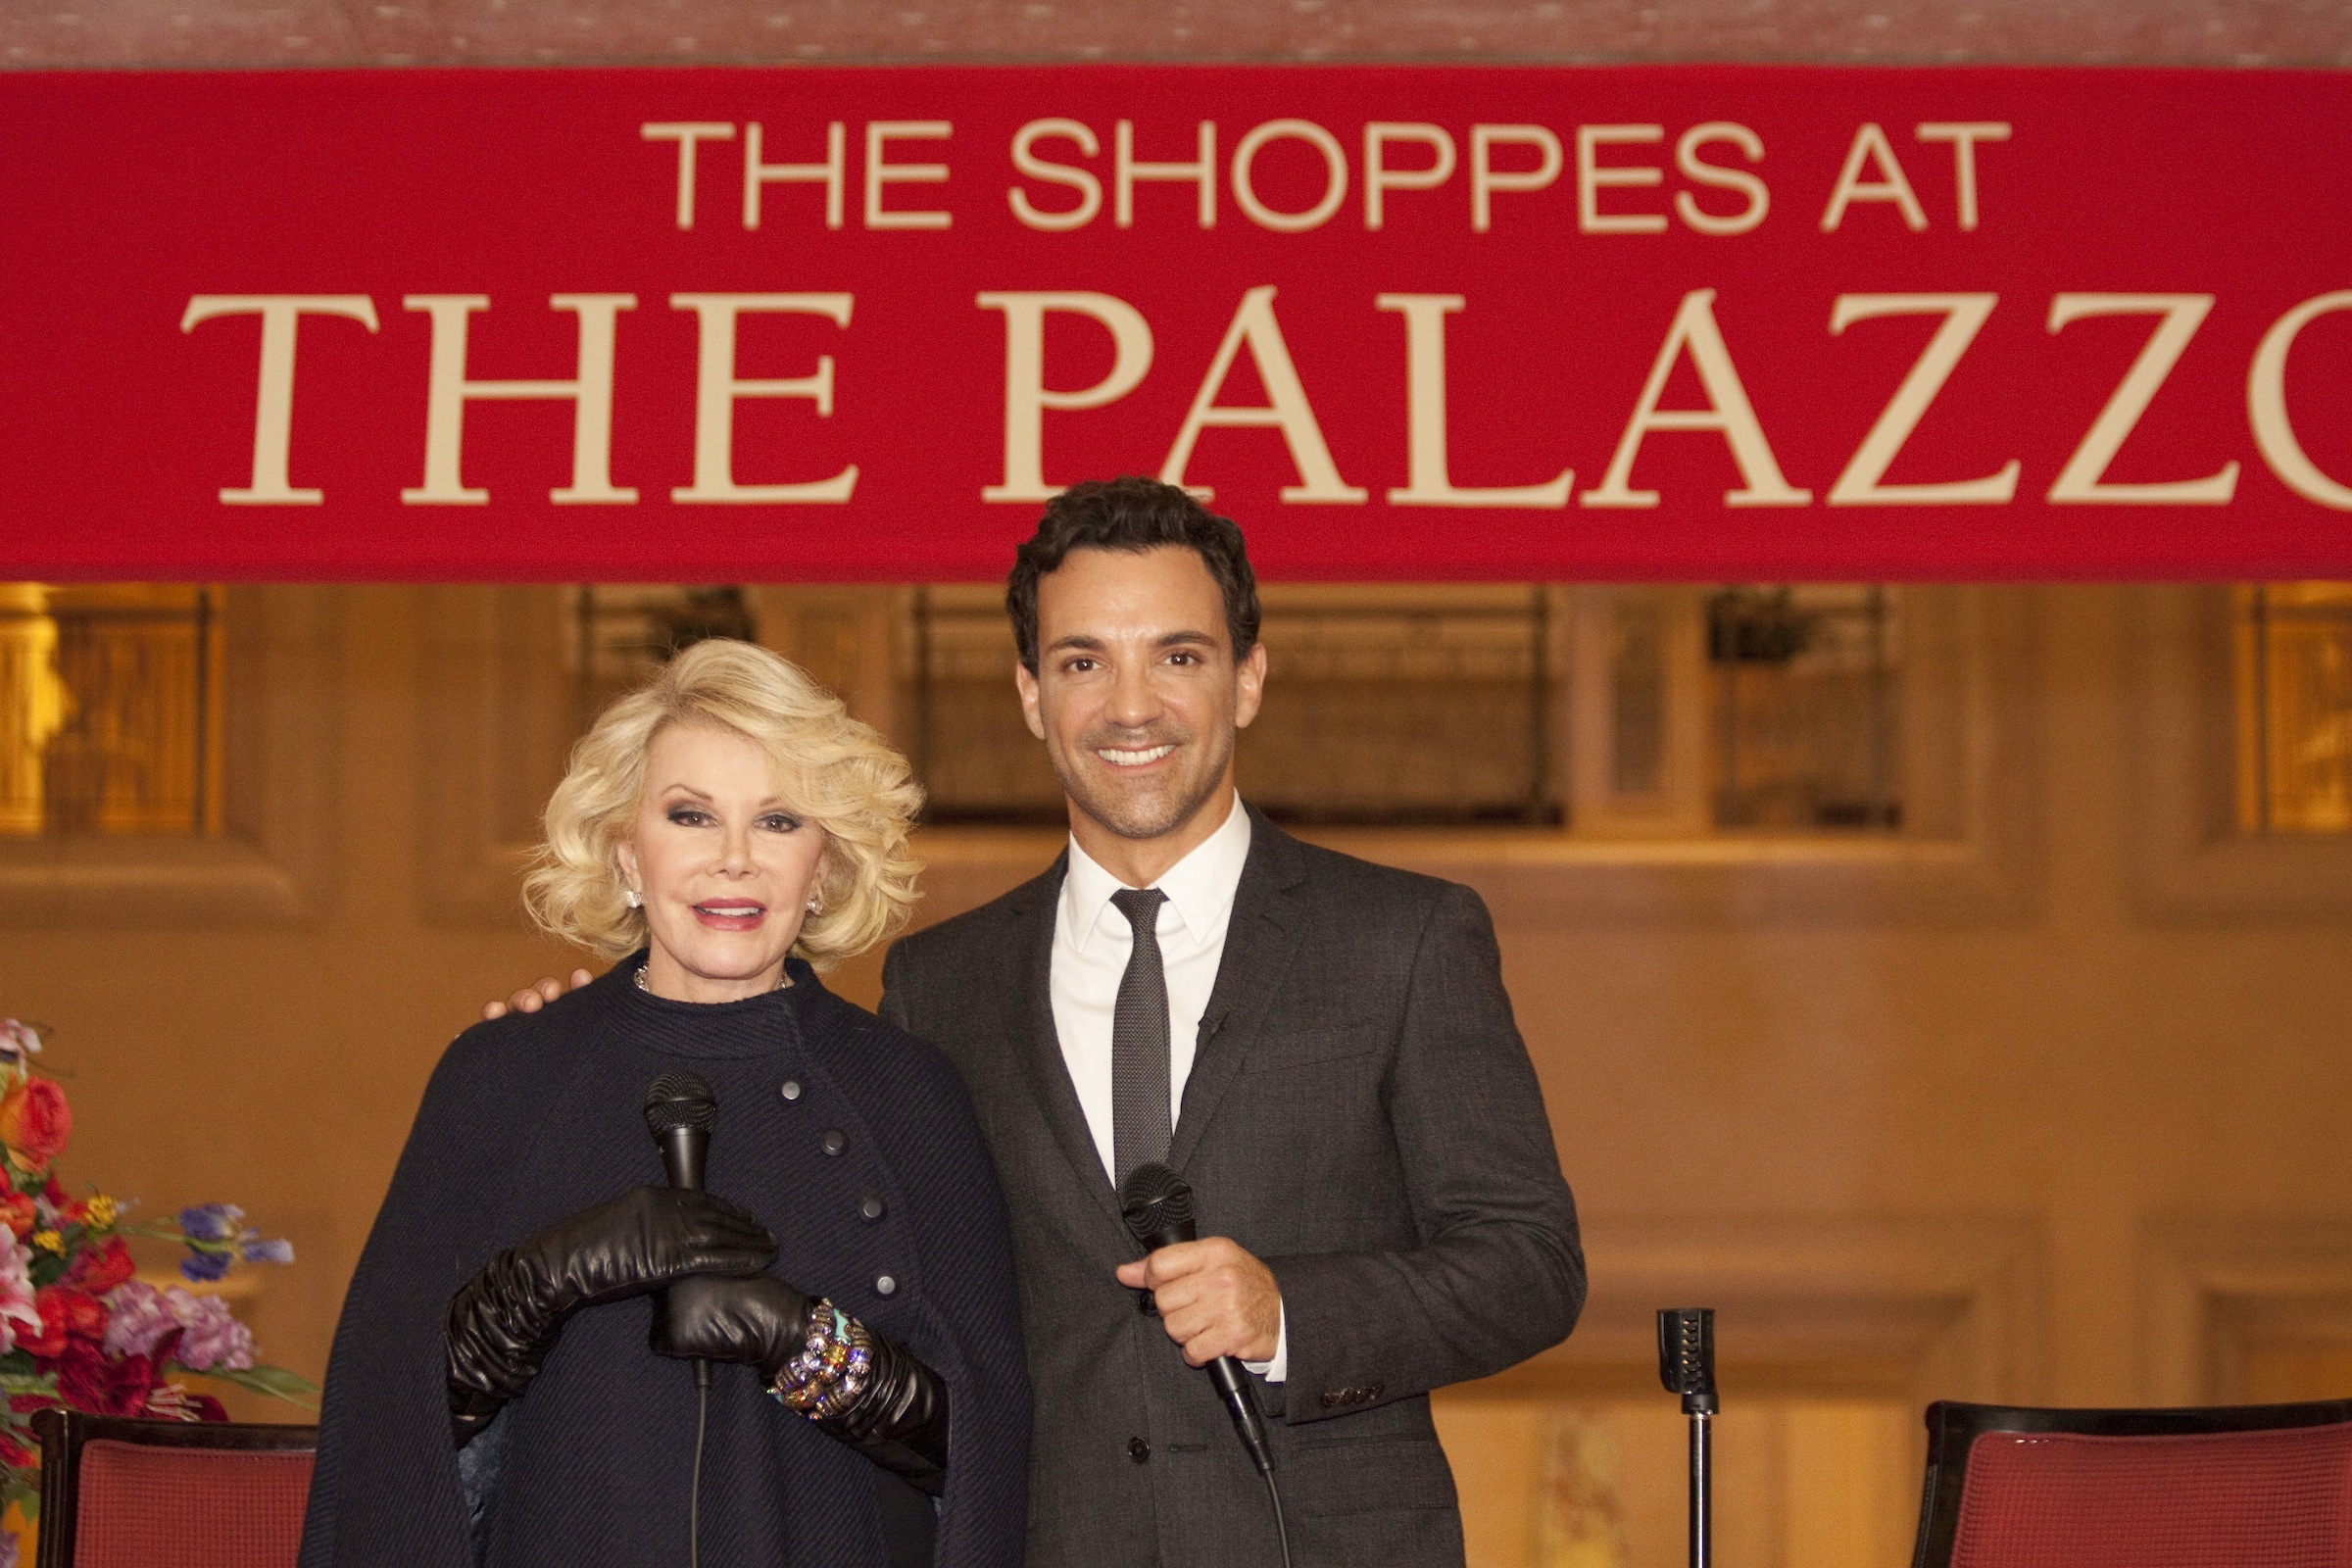 George Kotsiopoulos and Joan Rivers celebrate Fashion's Night Out at The Shoppes at The Palazzo